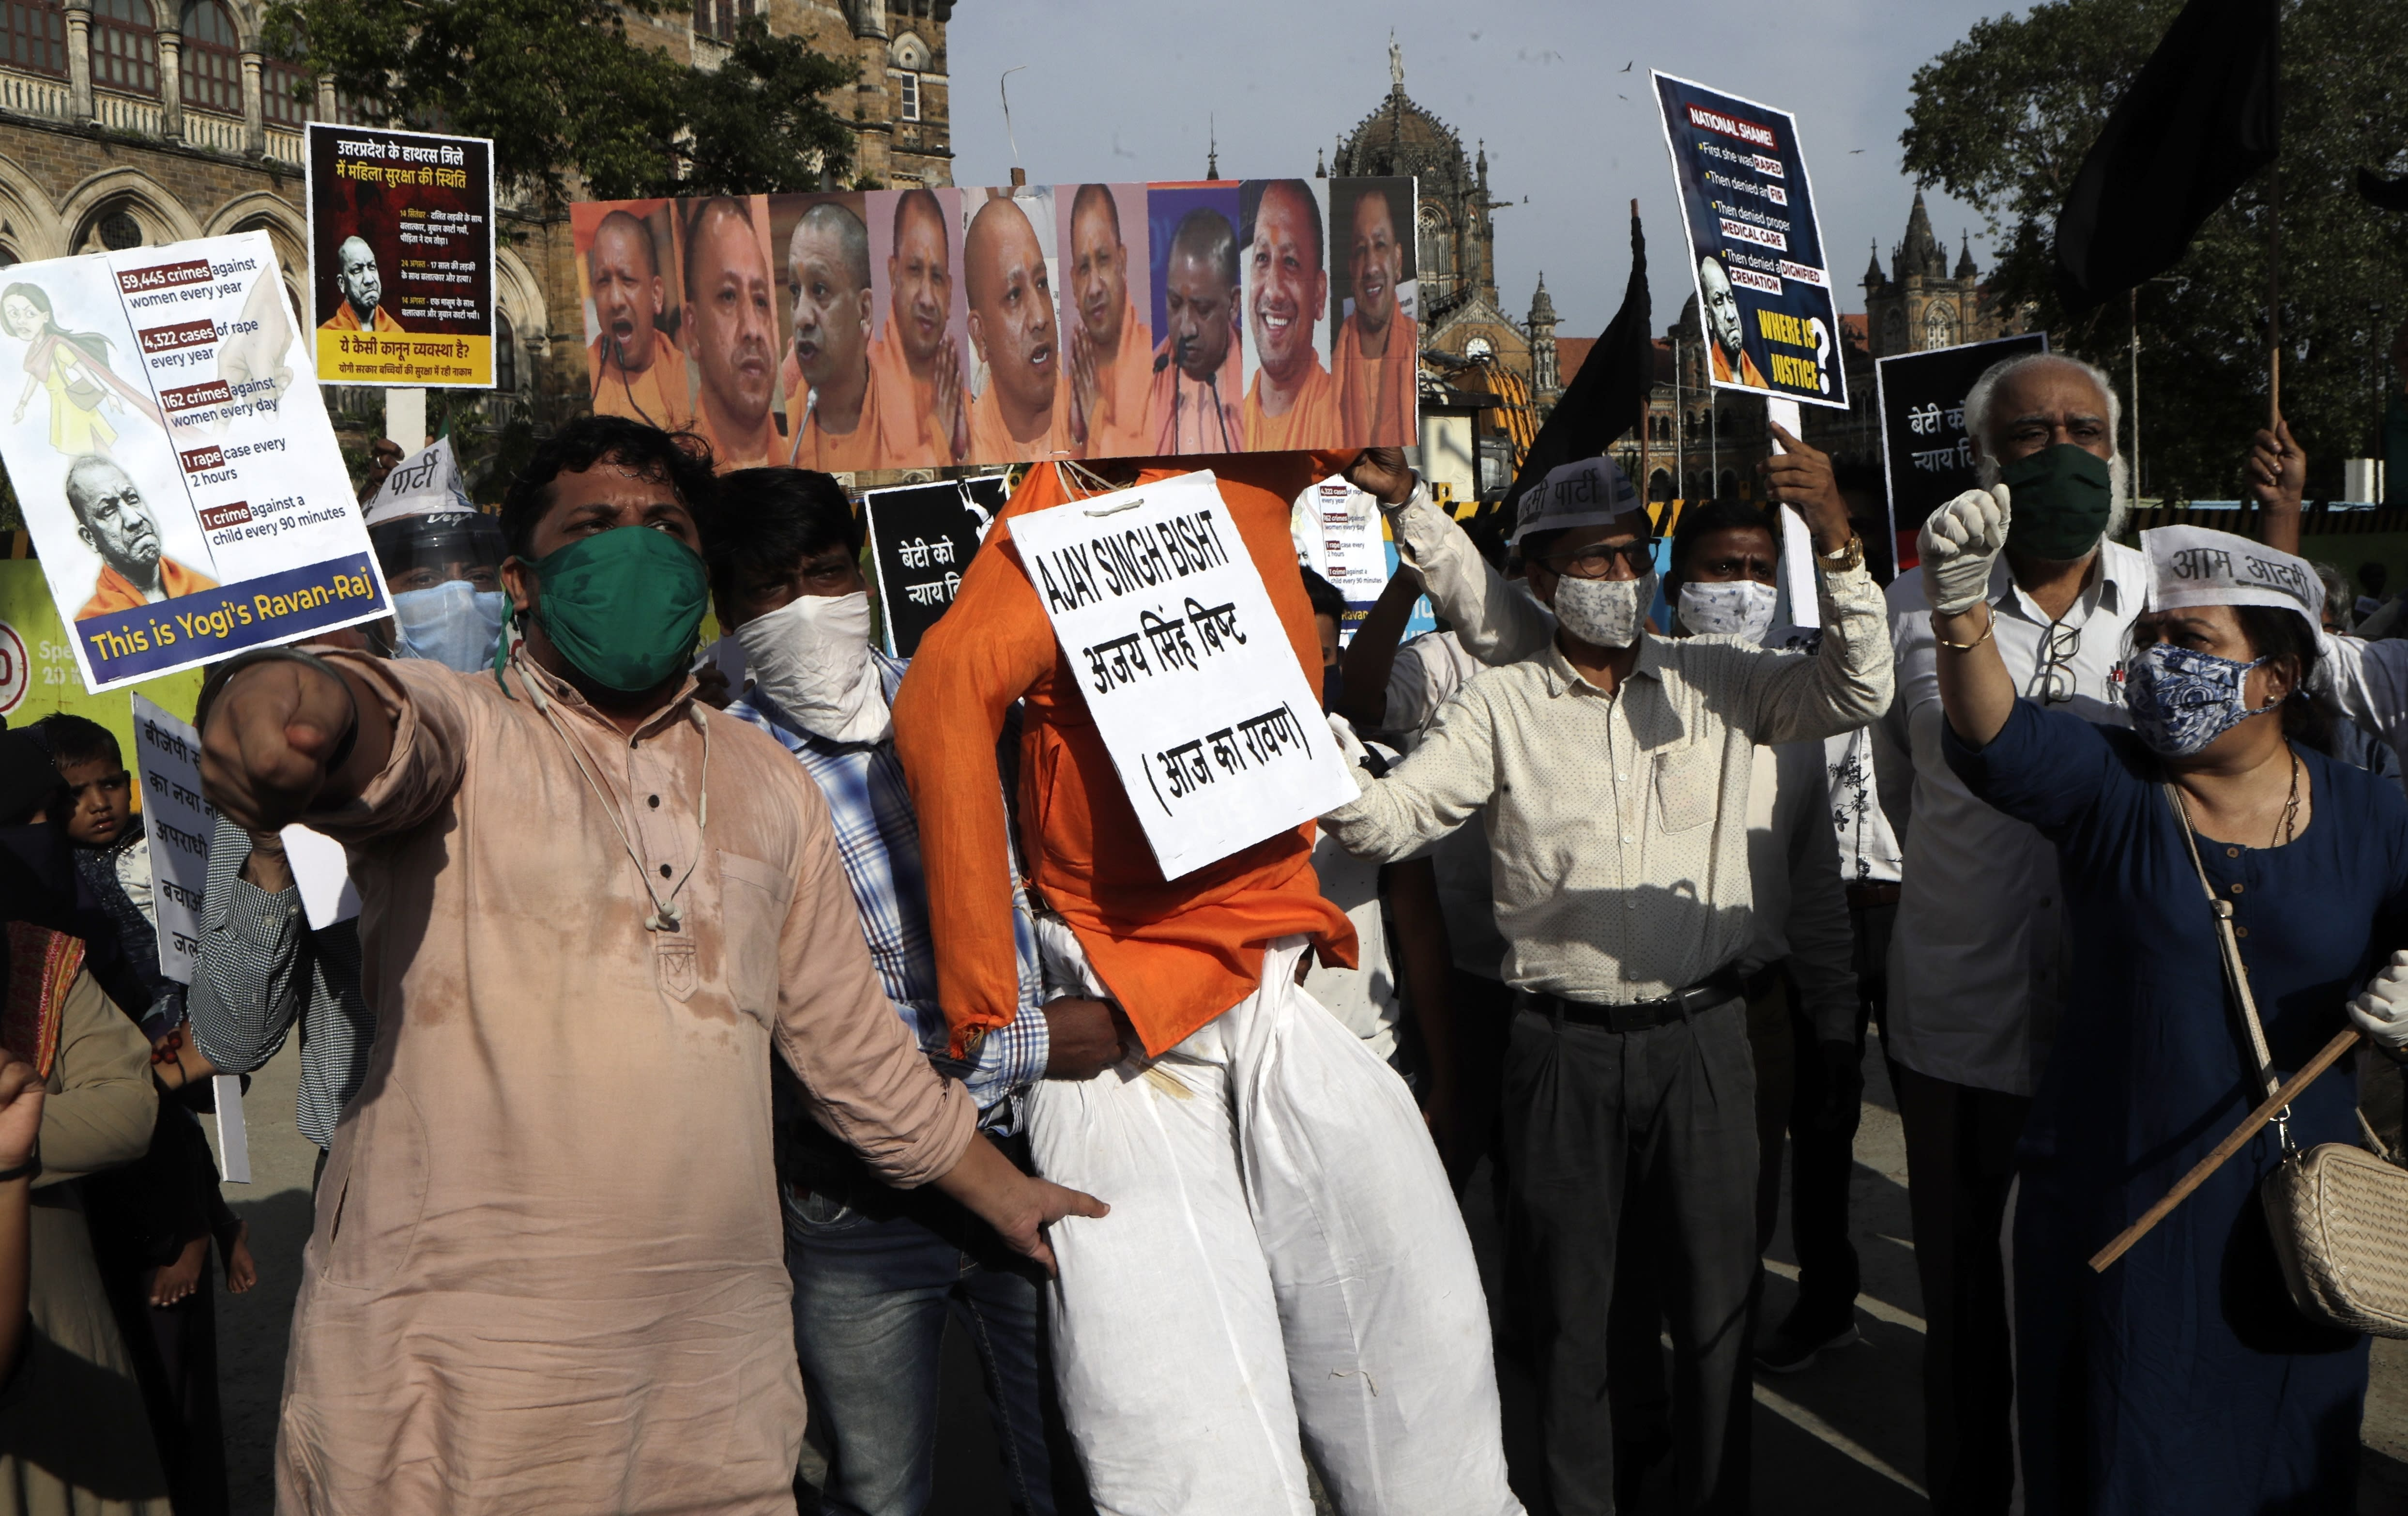 Activists protesting against gang rape and killing of a woman in Uttar Pradesh's Hathras district shout slogans and beat an effigy of Uttar Pradesh state Chief Minister Yogi Adityanath in Mumbai, India, Thursday, Oct. 1, 2020. The gang rape and killing of the woman from the lowest rung of India's caste system has sparked outrage across the country with several politicians and activists demanding justice and protesters rallying on the streets. (AP Photo/Rajanish Kakade)